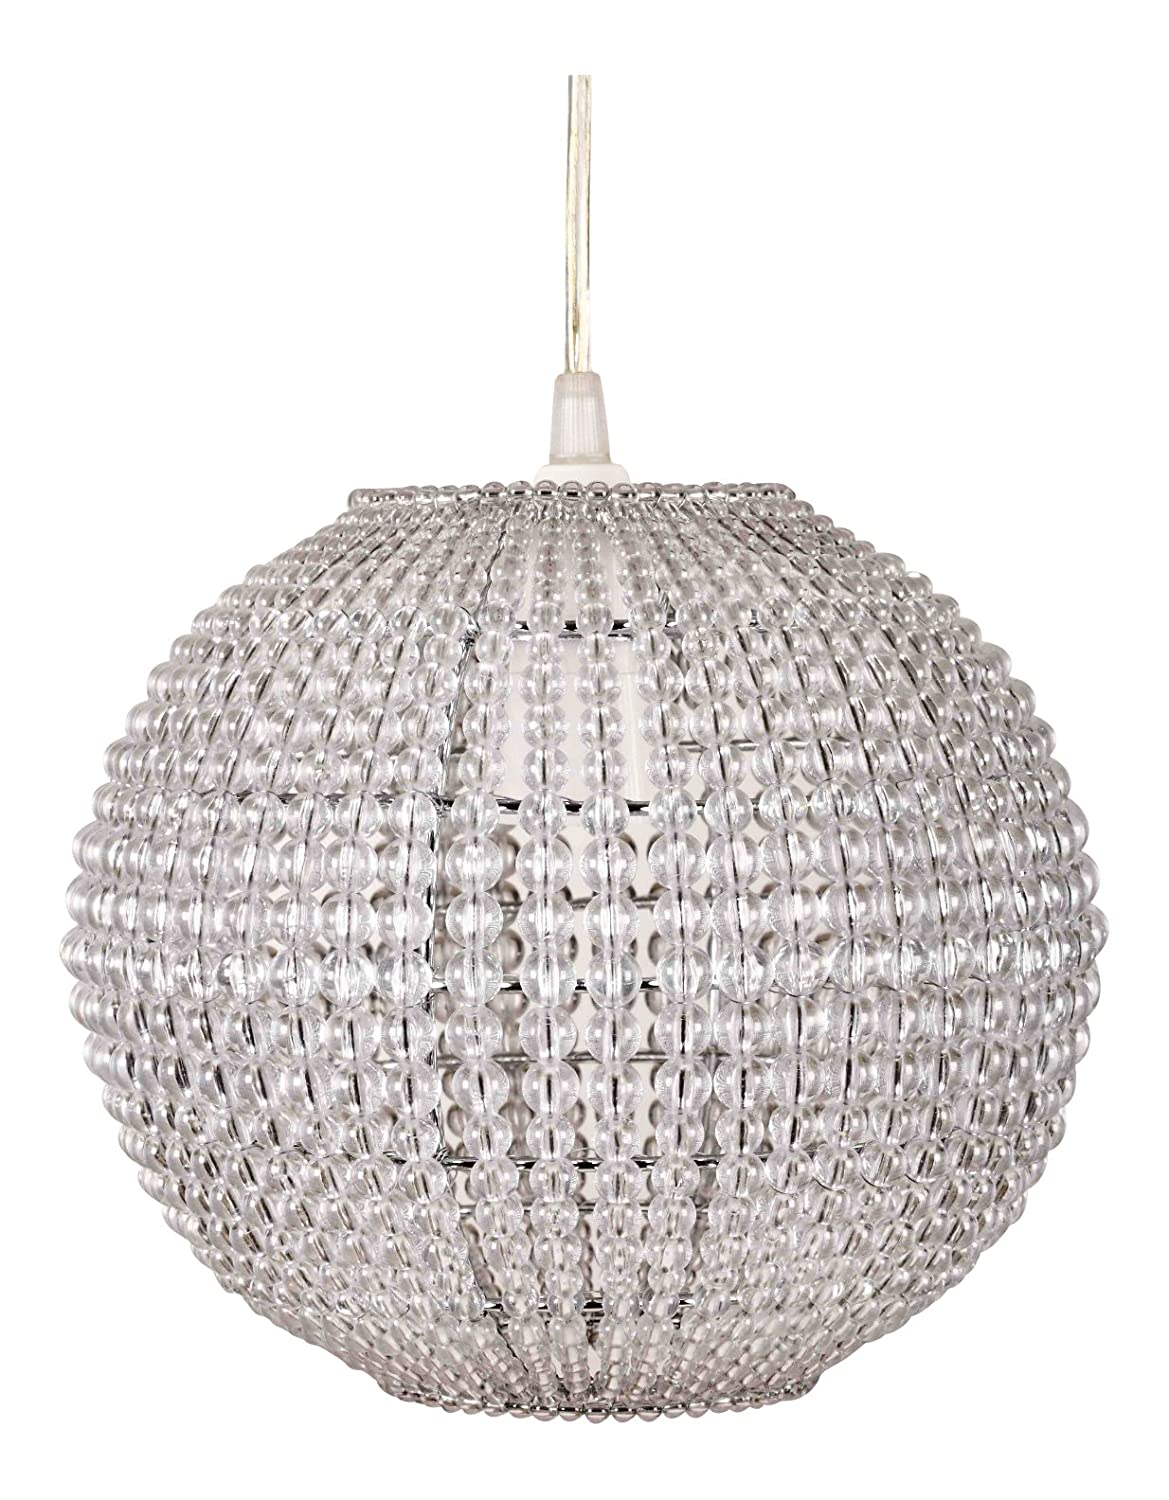 large10 inches modern globe ceiling chandelier light